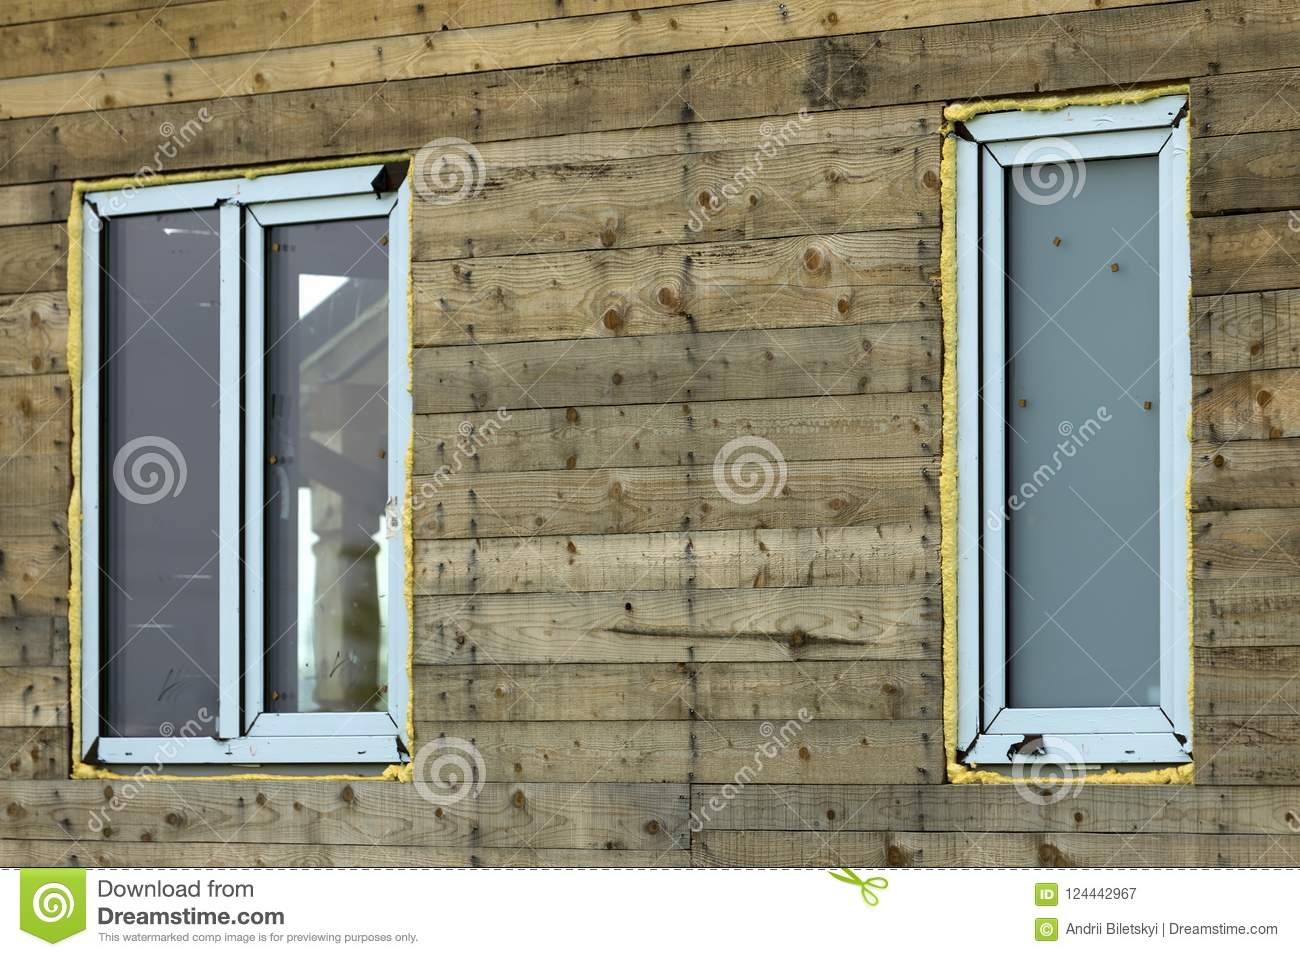 Installing plastic windows in a wooden house do it yourself 18